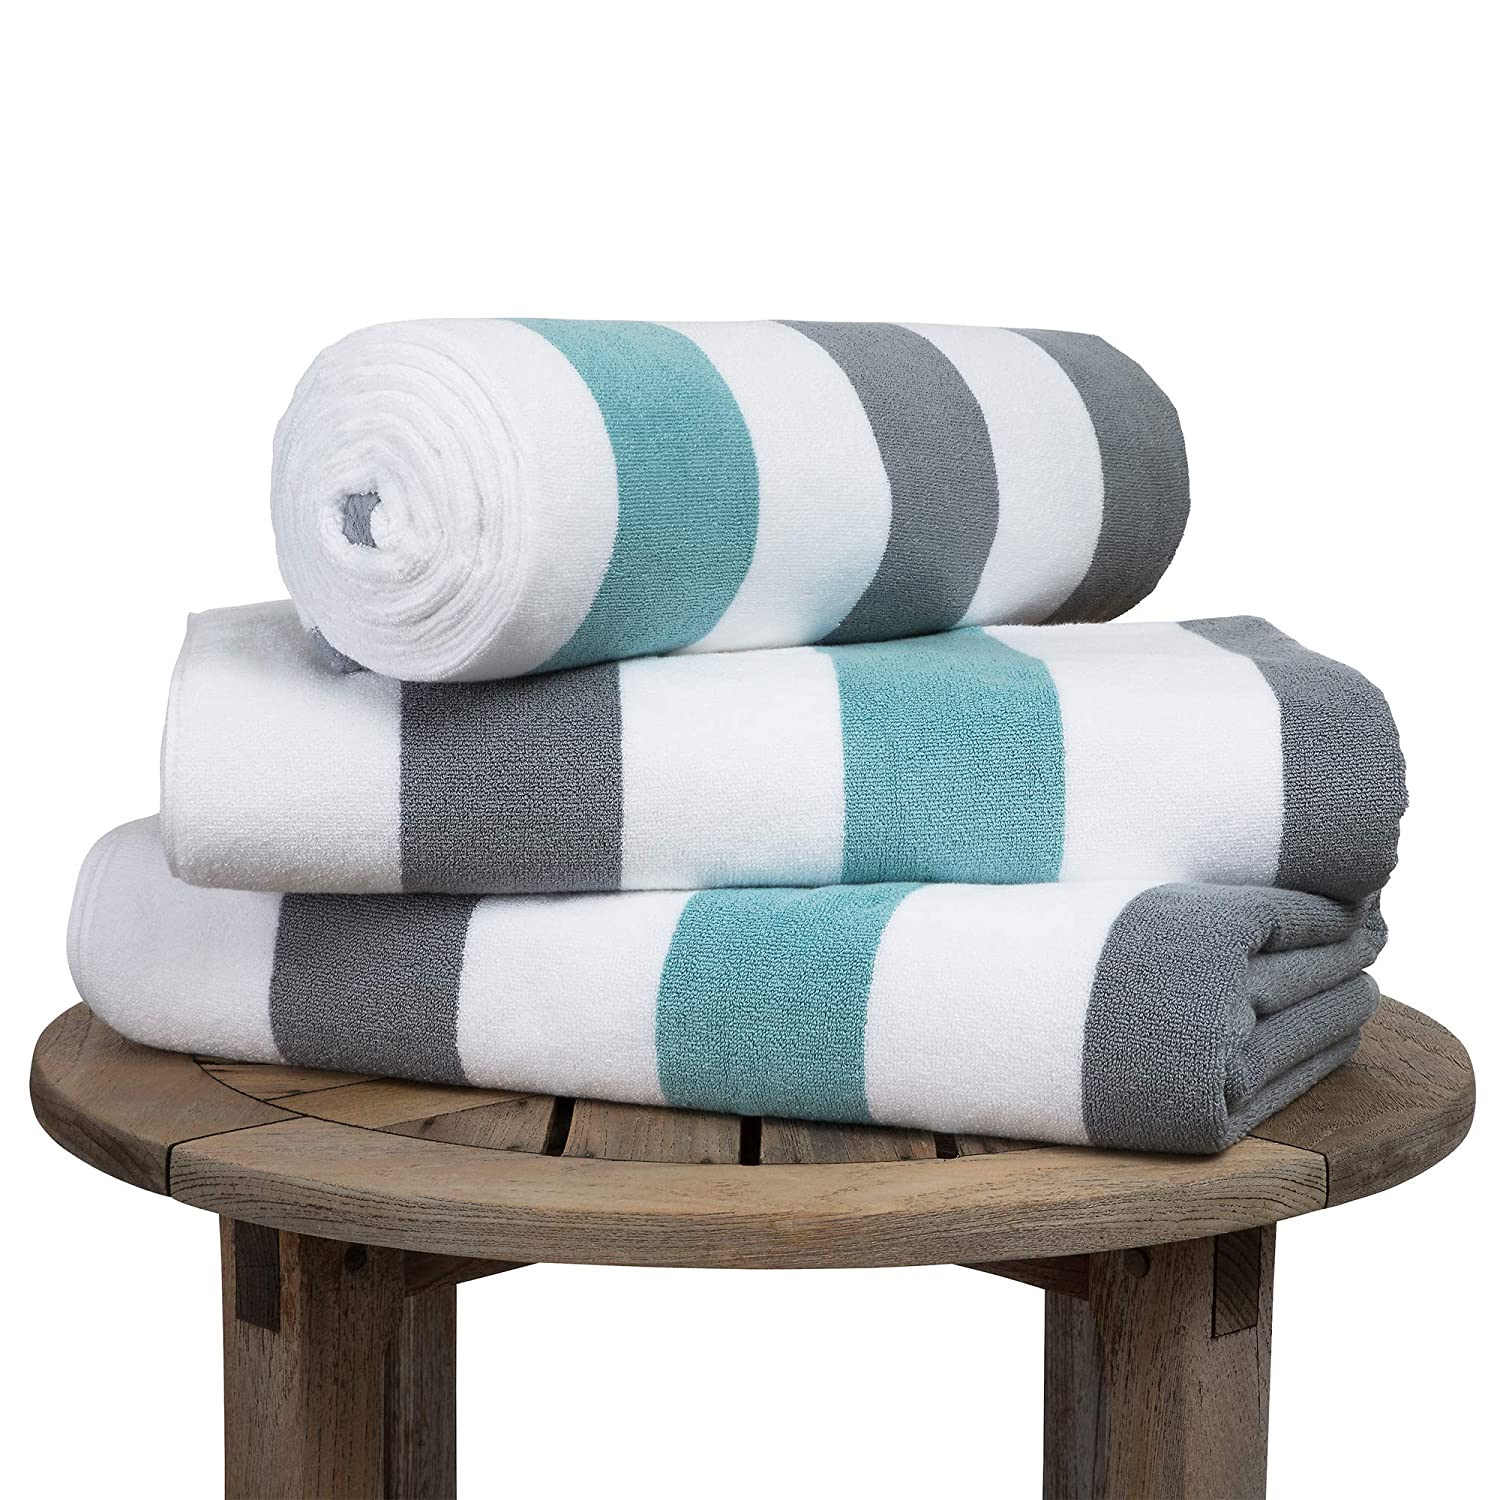 Oversize Plush Cabana Towel by Laguna Beach Textile Co Best Beach Towels